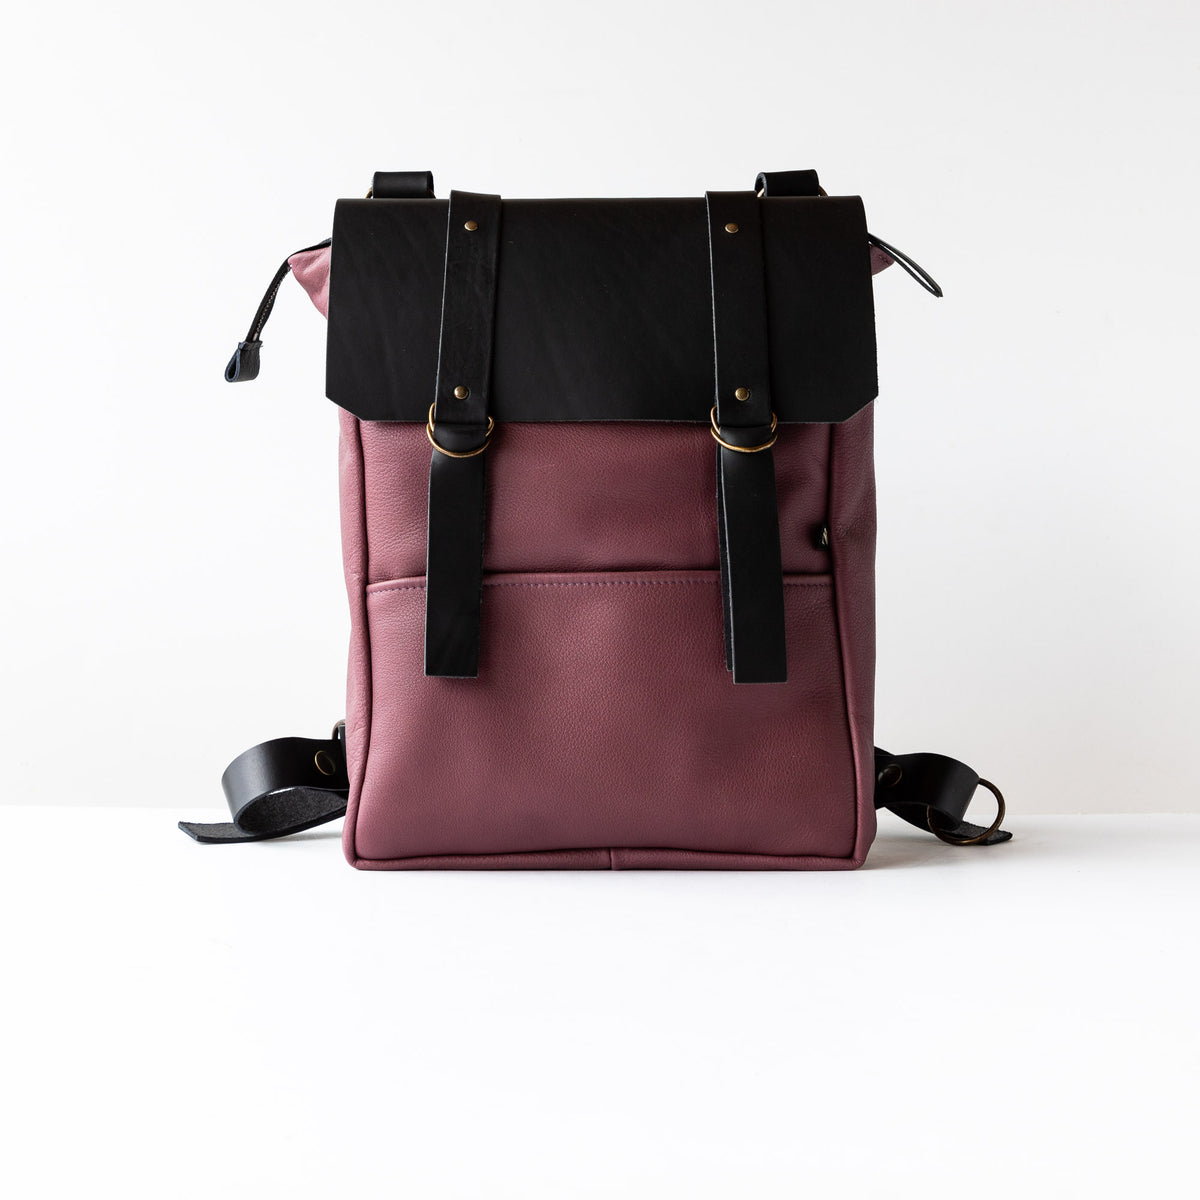 Purple & Black Handcrafted Leather Backpack / Crossbody Bag - Sold by Chic & Basta